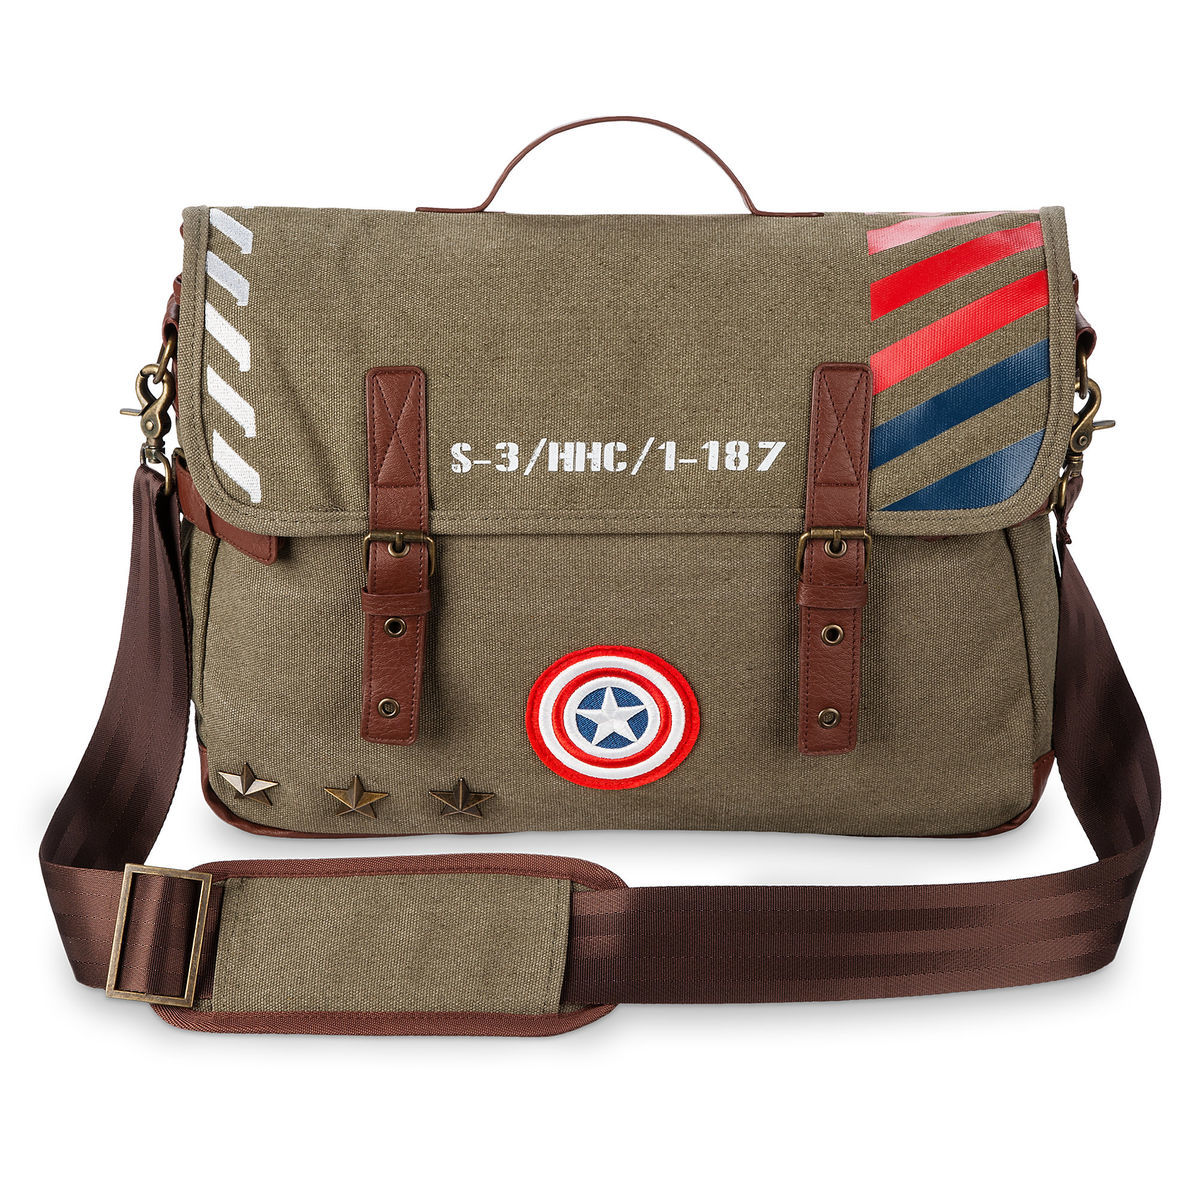 Product Image of Captain America Military Messenger Bag   1 f3e833c74d4